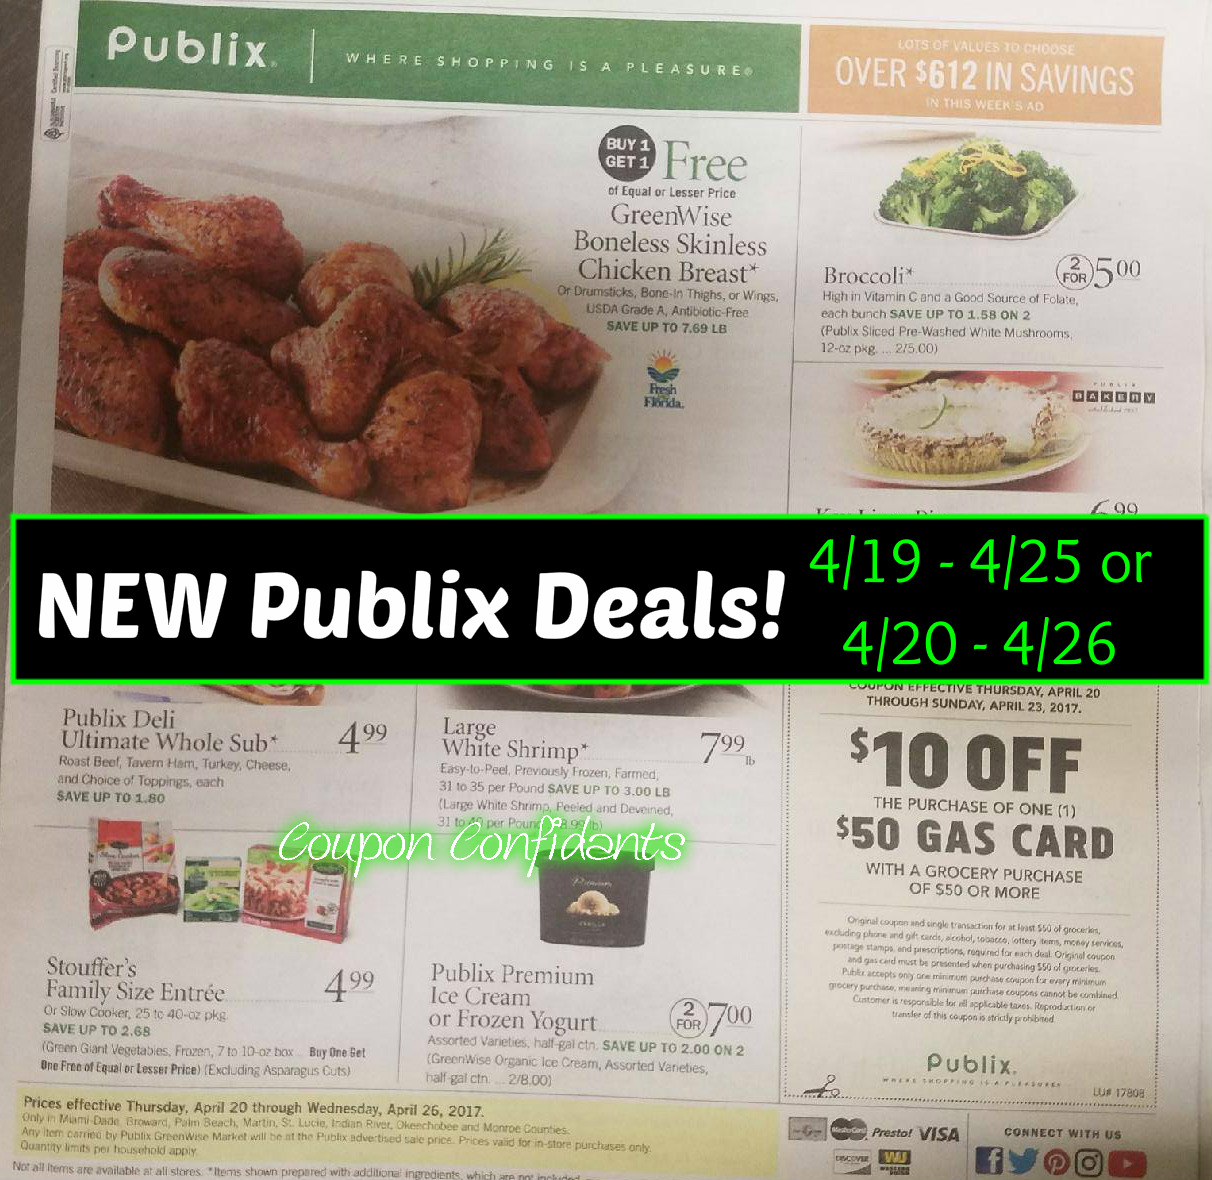 - Publix Super Market's Weekly Ad provides the most up-do-date listings and information for weekly sales at your local Publix Super Market. Check back every week to view new specials and offerings.